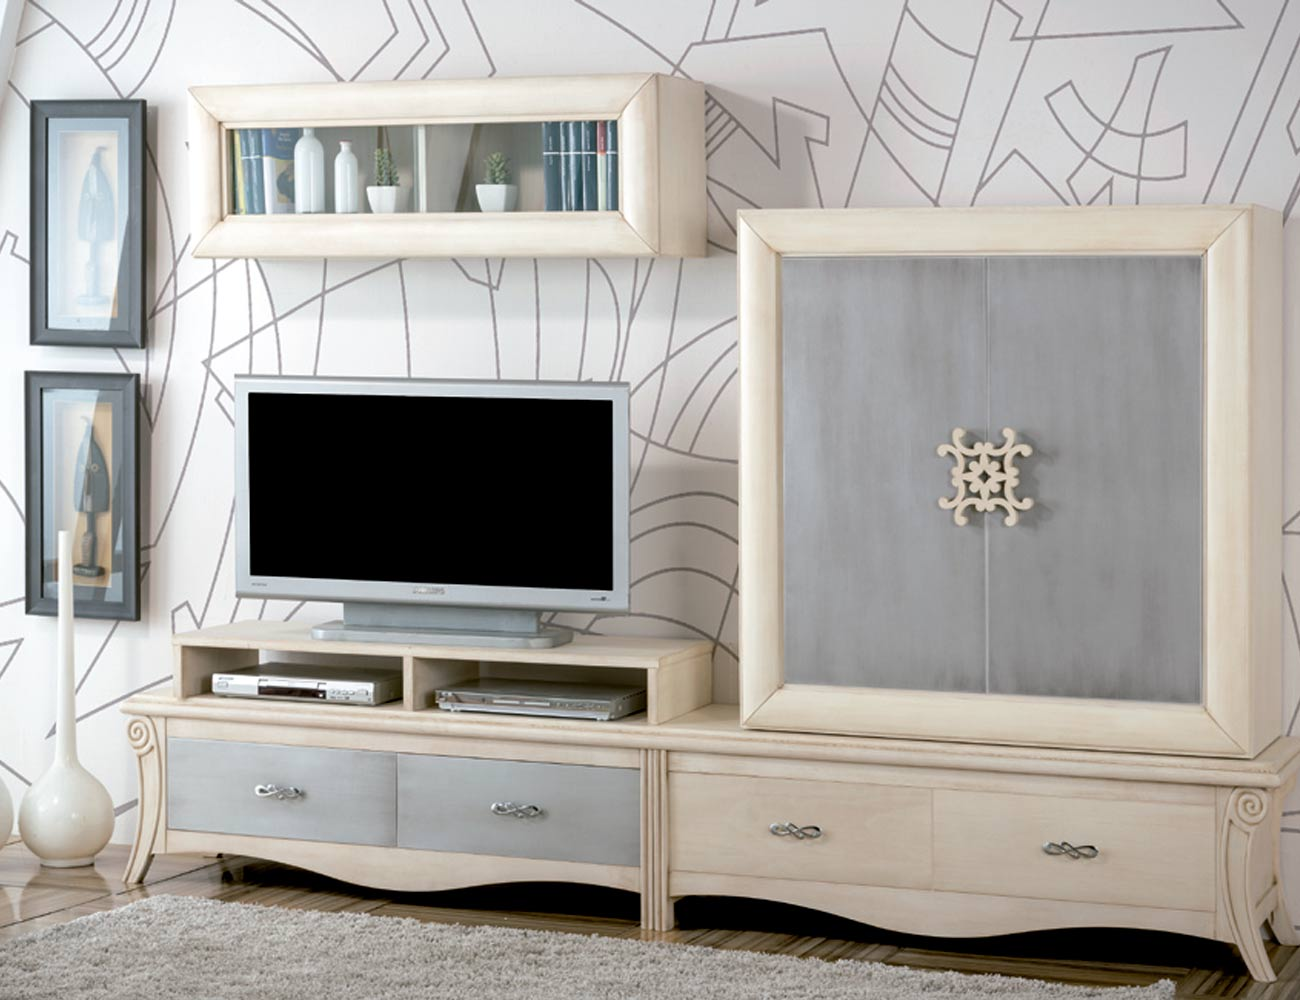 Mueble salon neoclasico color 500 5031